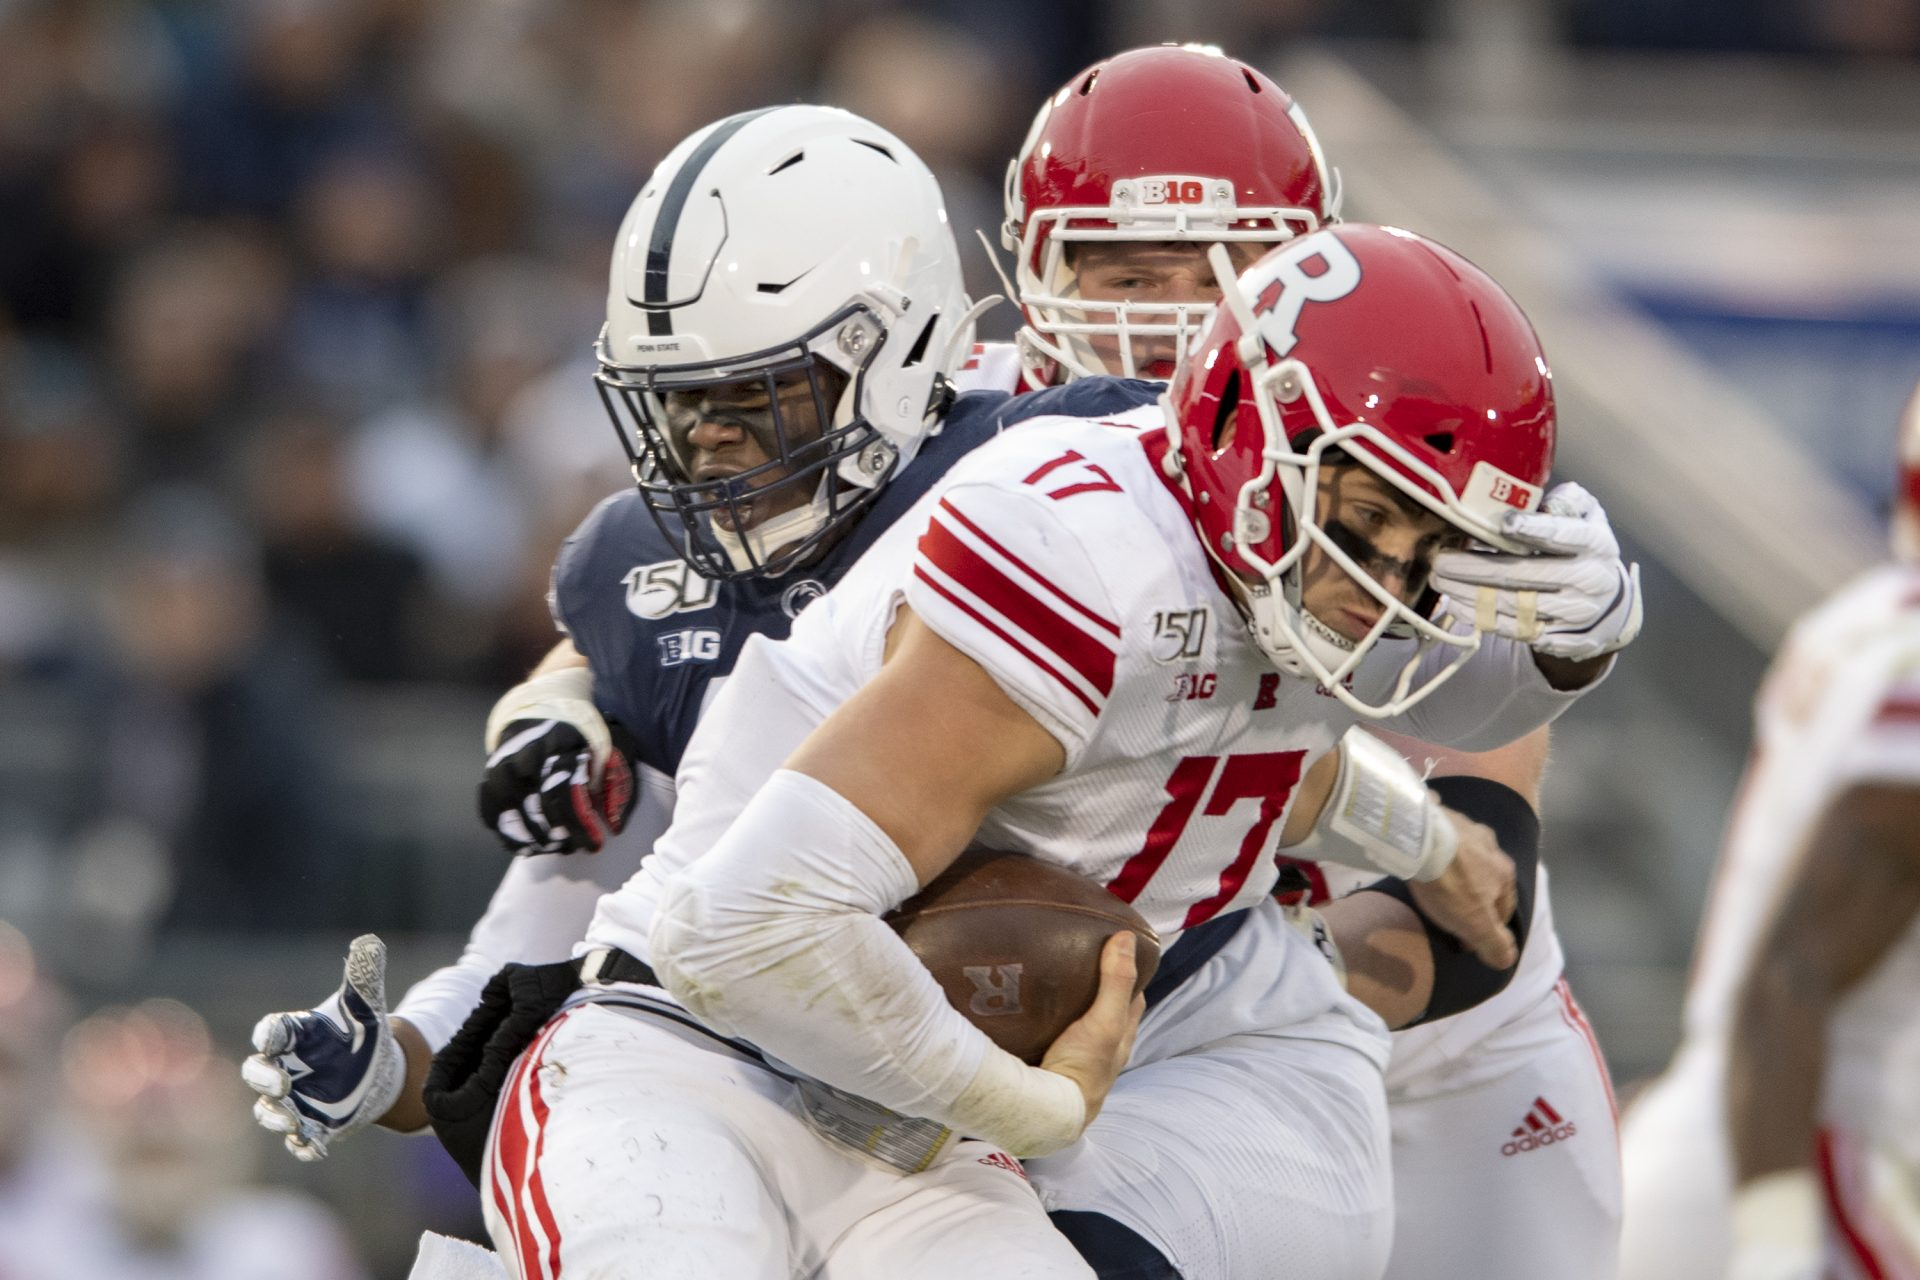 Penn State defensive end Daniel Joseph (49) sacks Rutgers quarterback Johnny Langan (17) in the second quarter of an NCAA college football game in State College, Pa., on Saturday, Nov. 30, 2019.